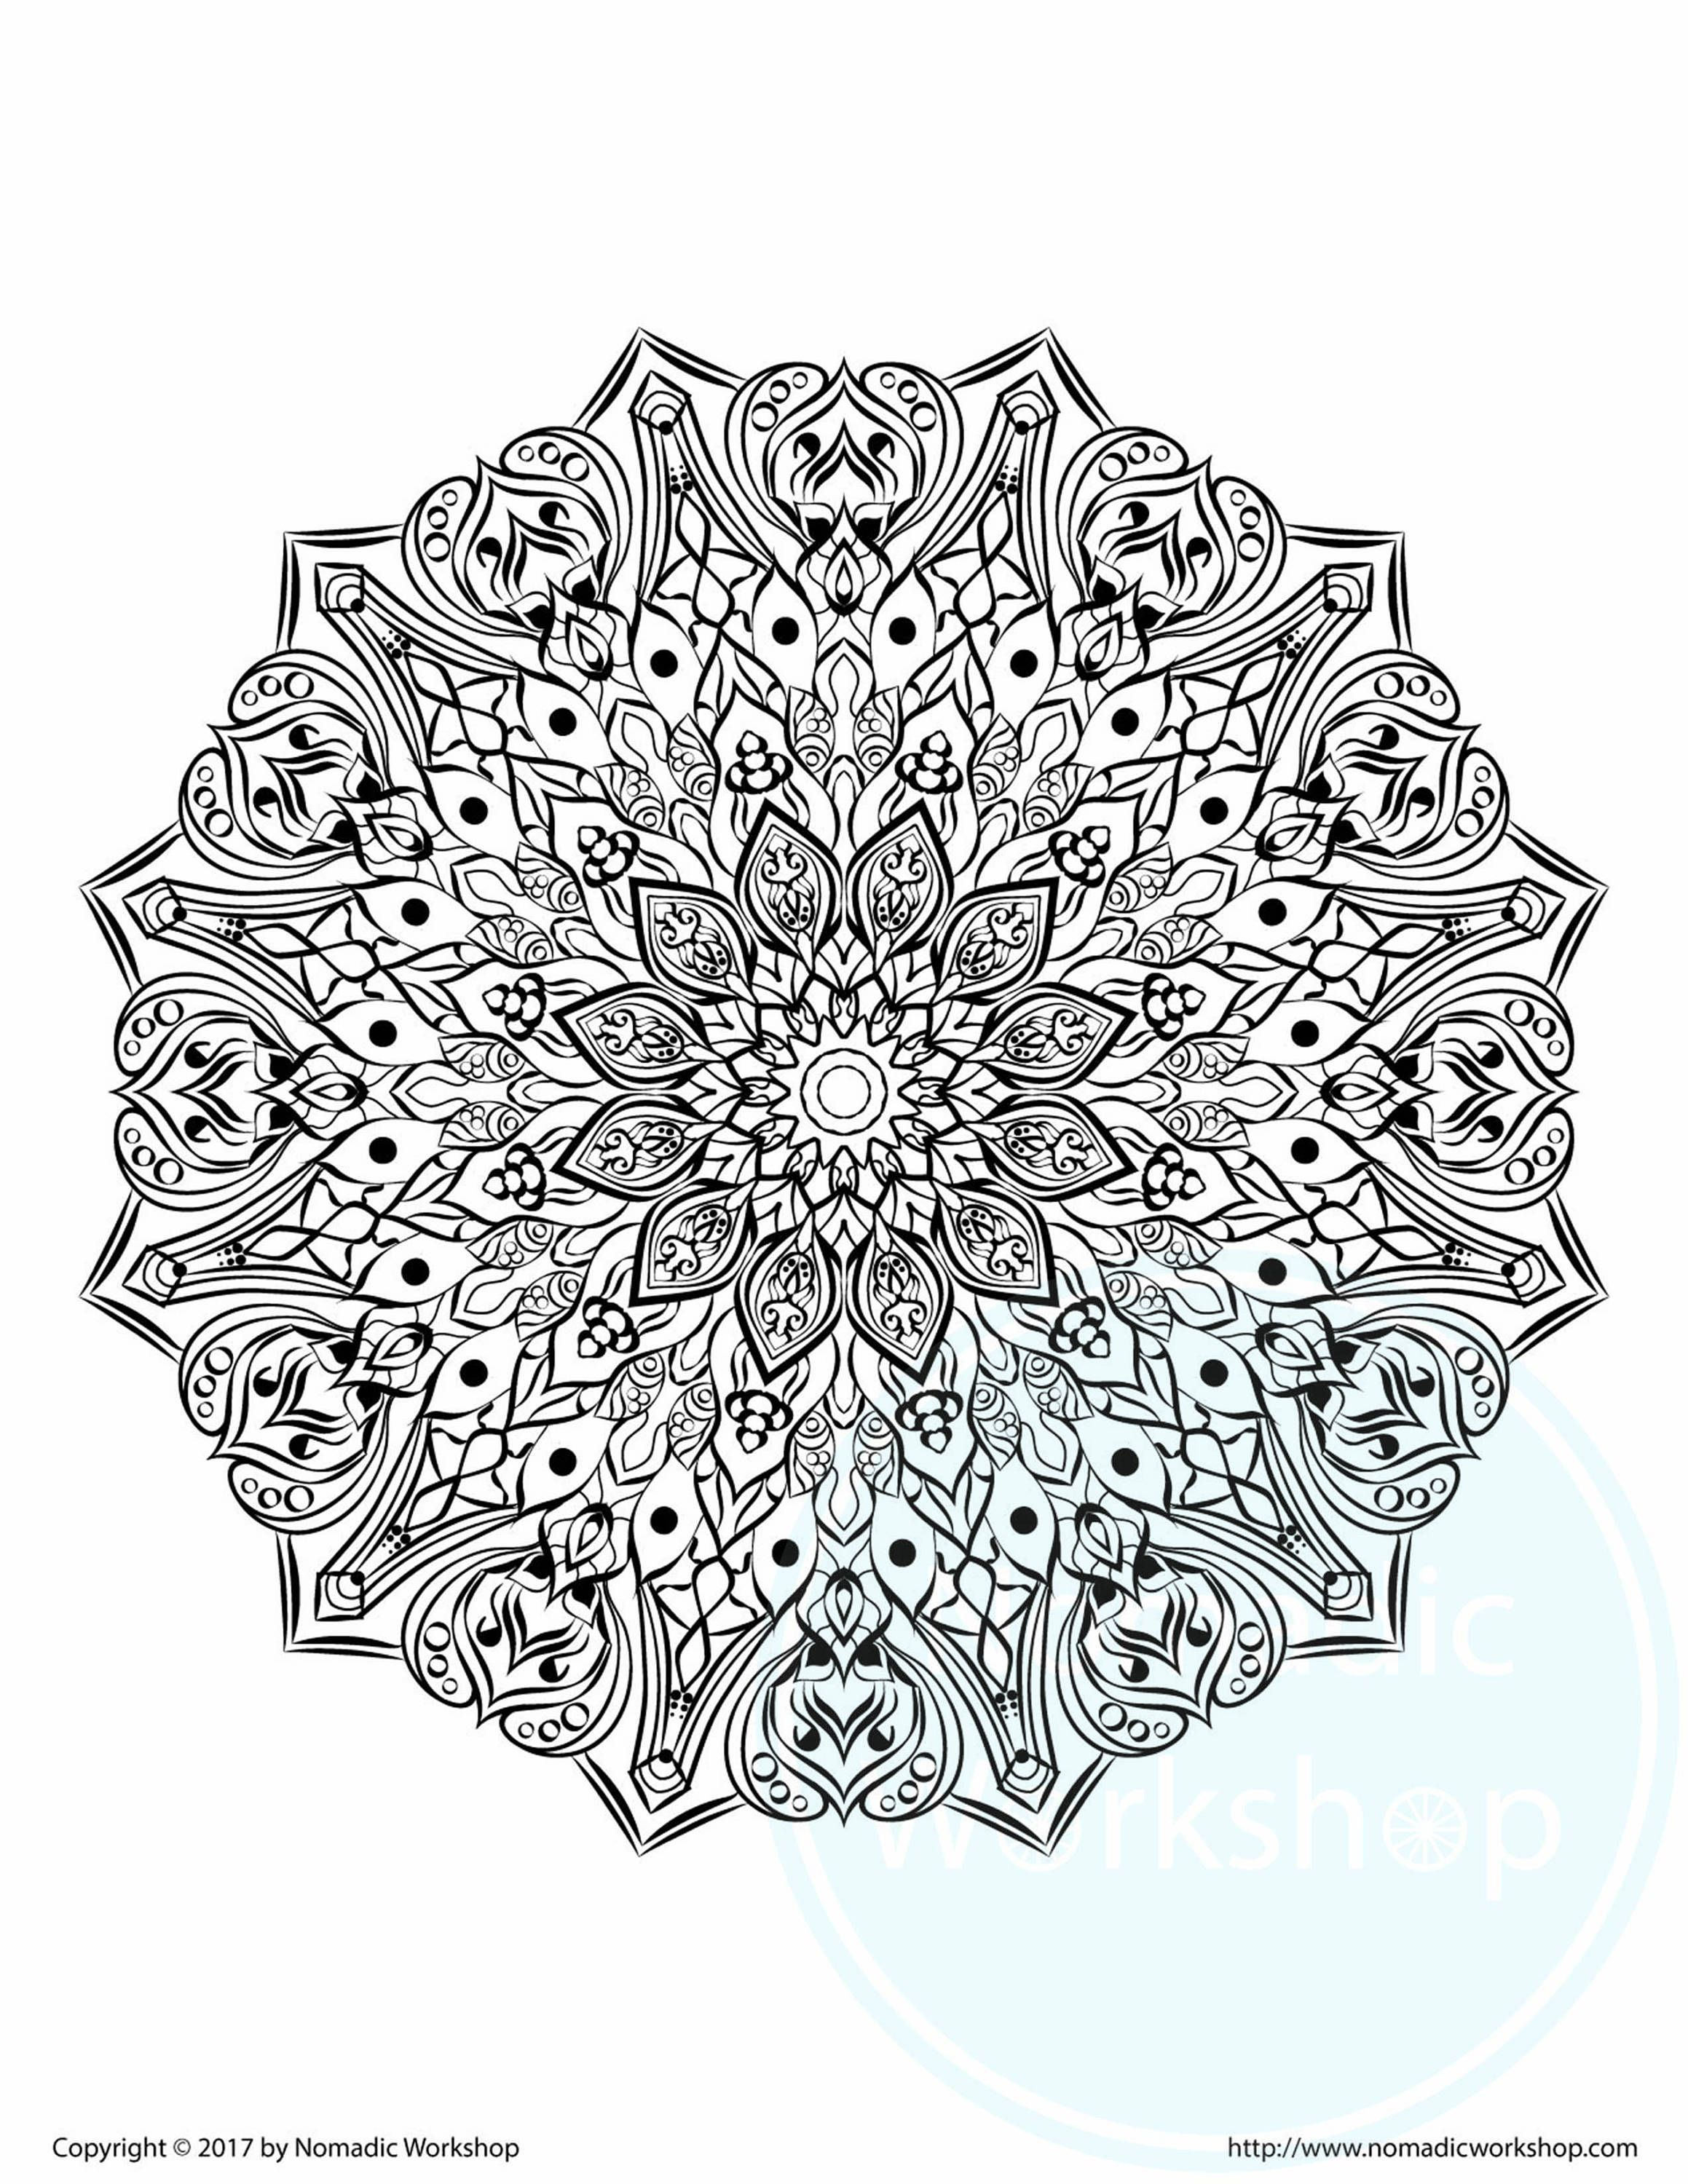 Mandala Coloring Pages Printable For Adults Coloring Mandala Printable Mandala Coloring Pages For Adults Mandala Printable Color Mandala Art Mandala Coloring Coloring Pages Mandala Coloring Pages